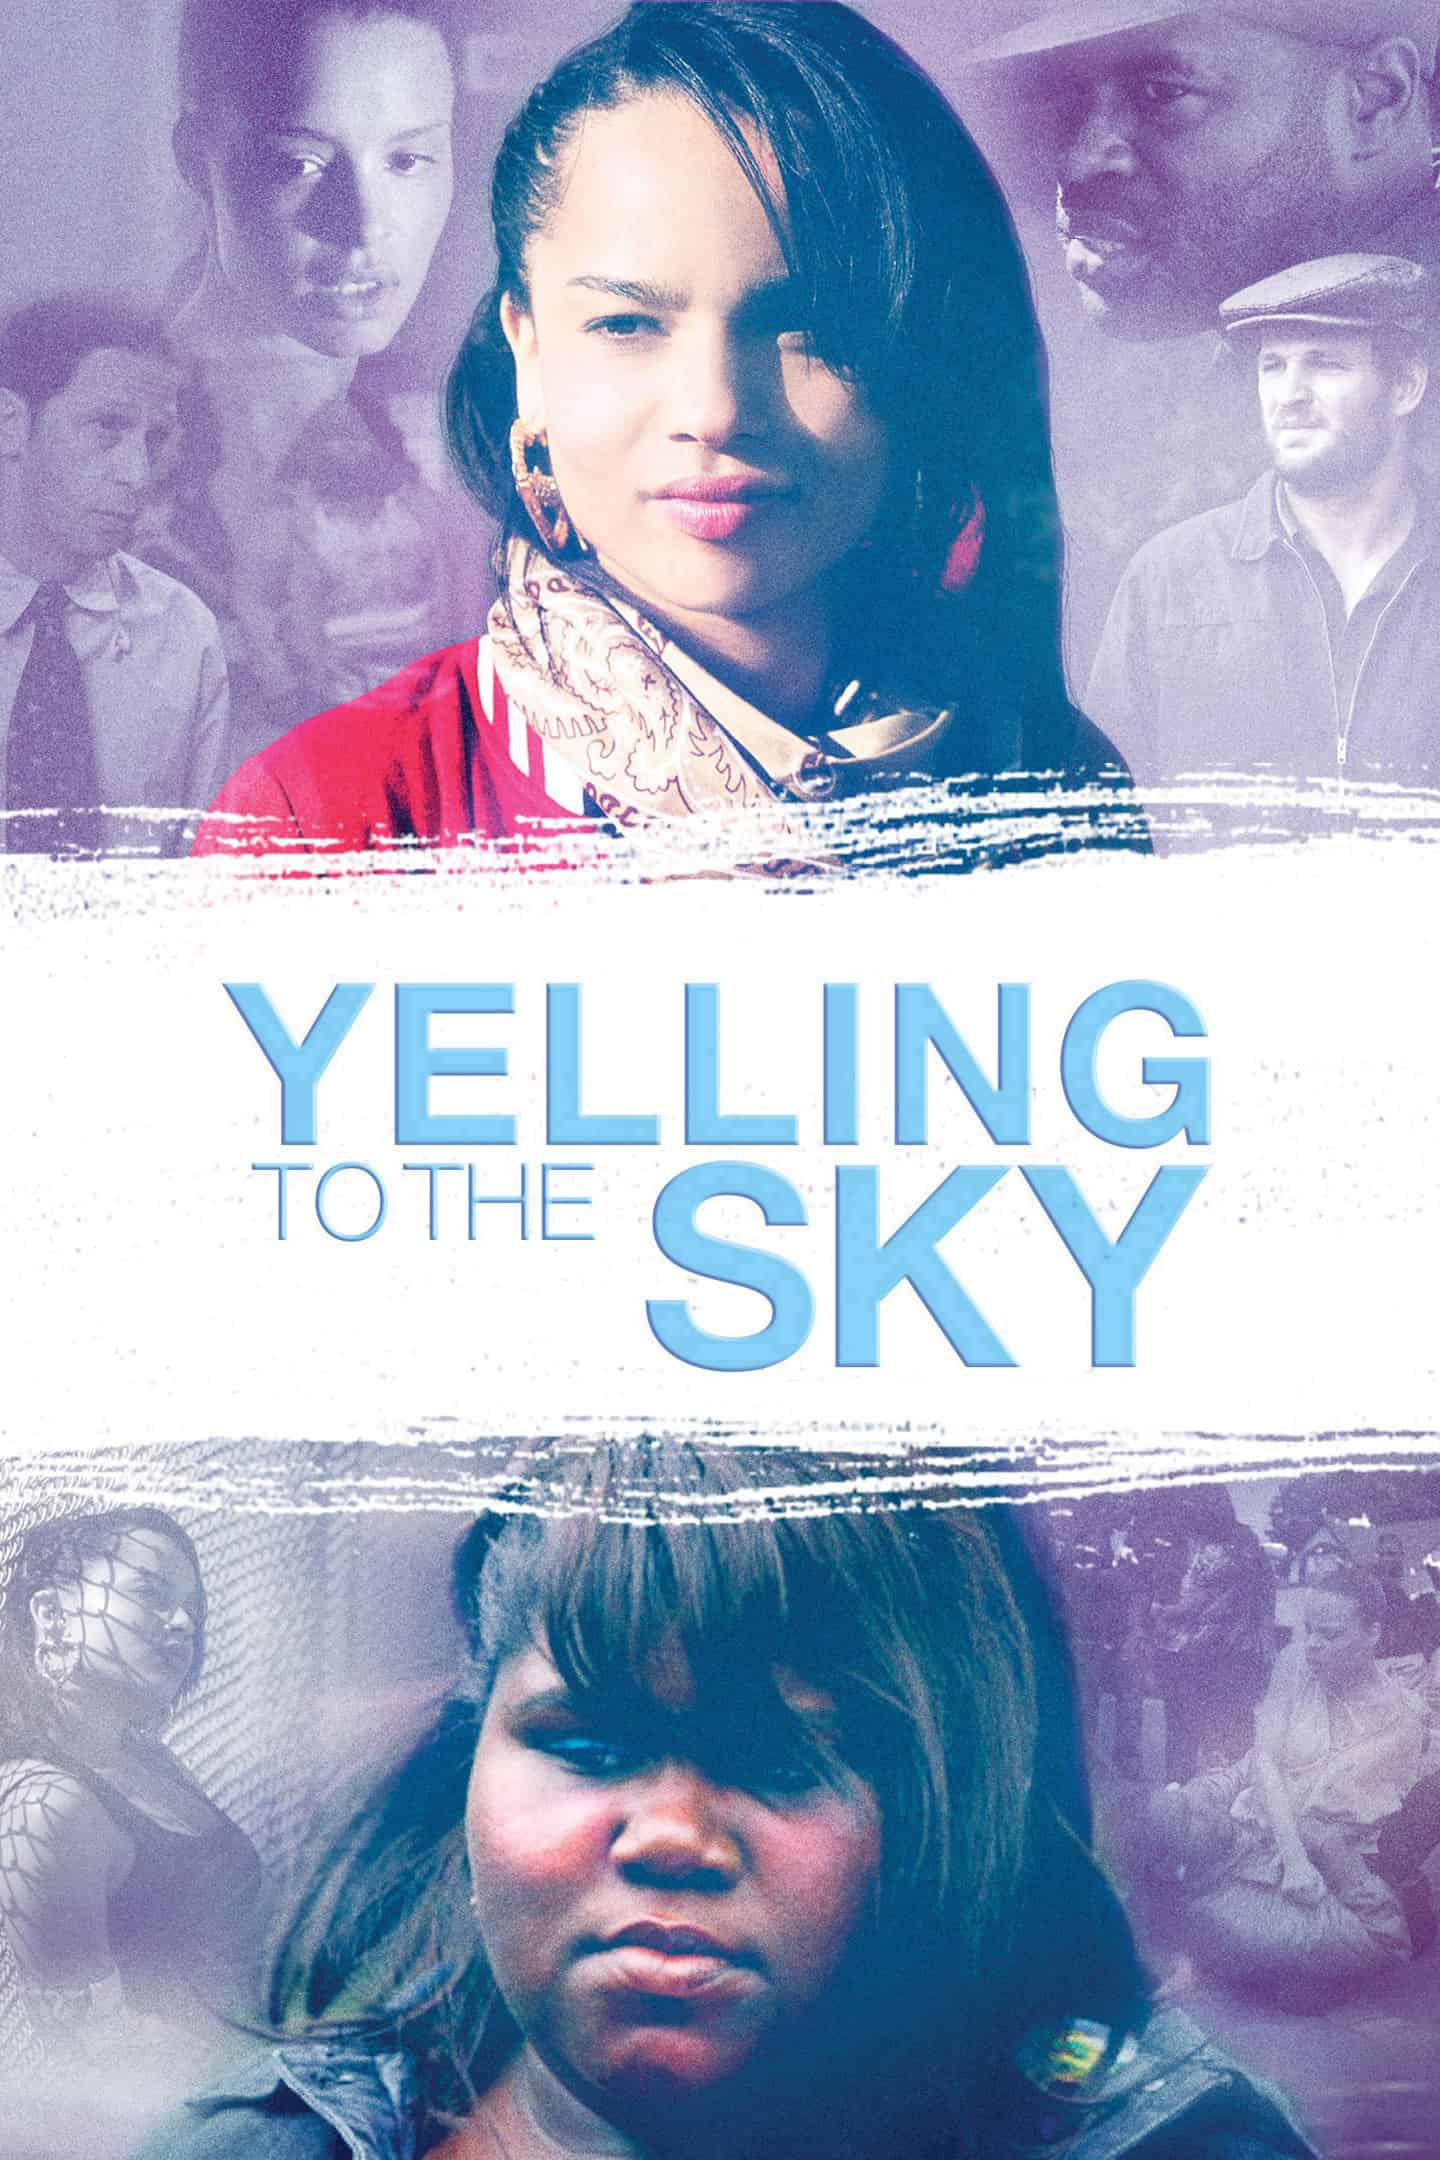 Yelling to the Sky, 2011